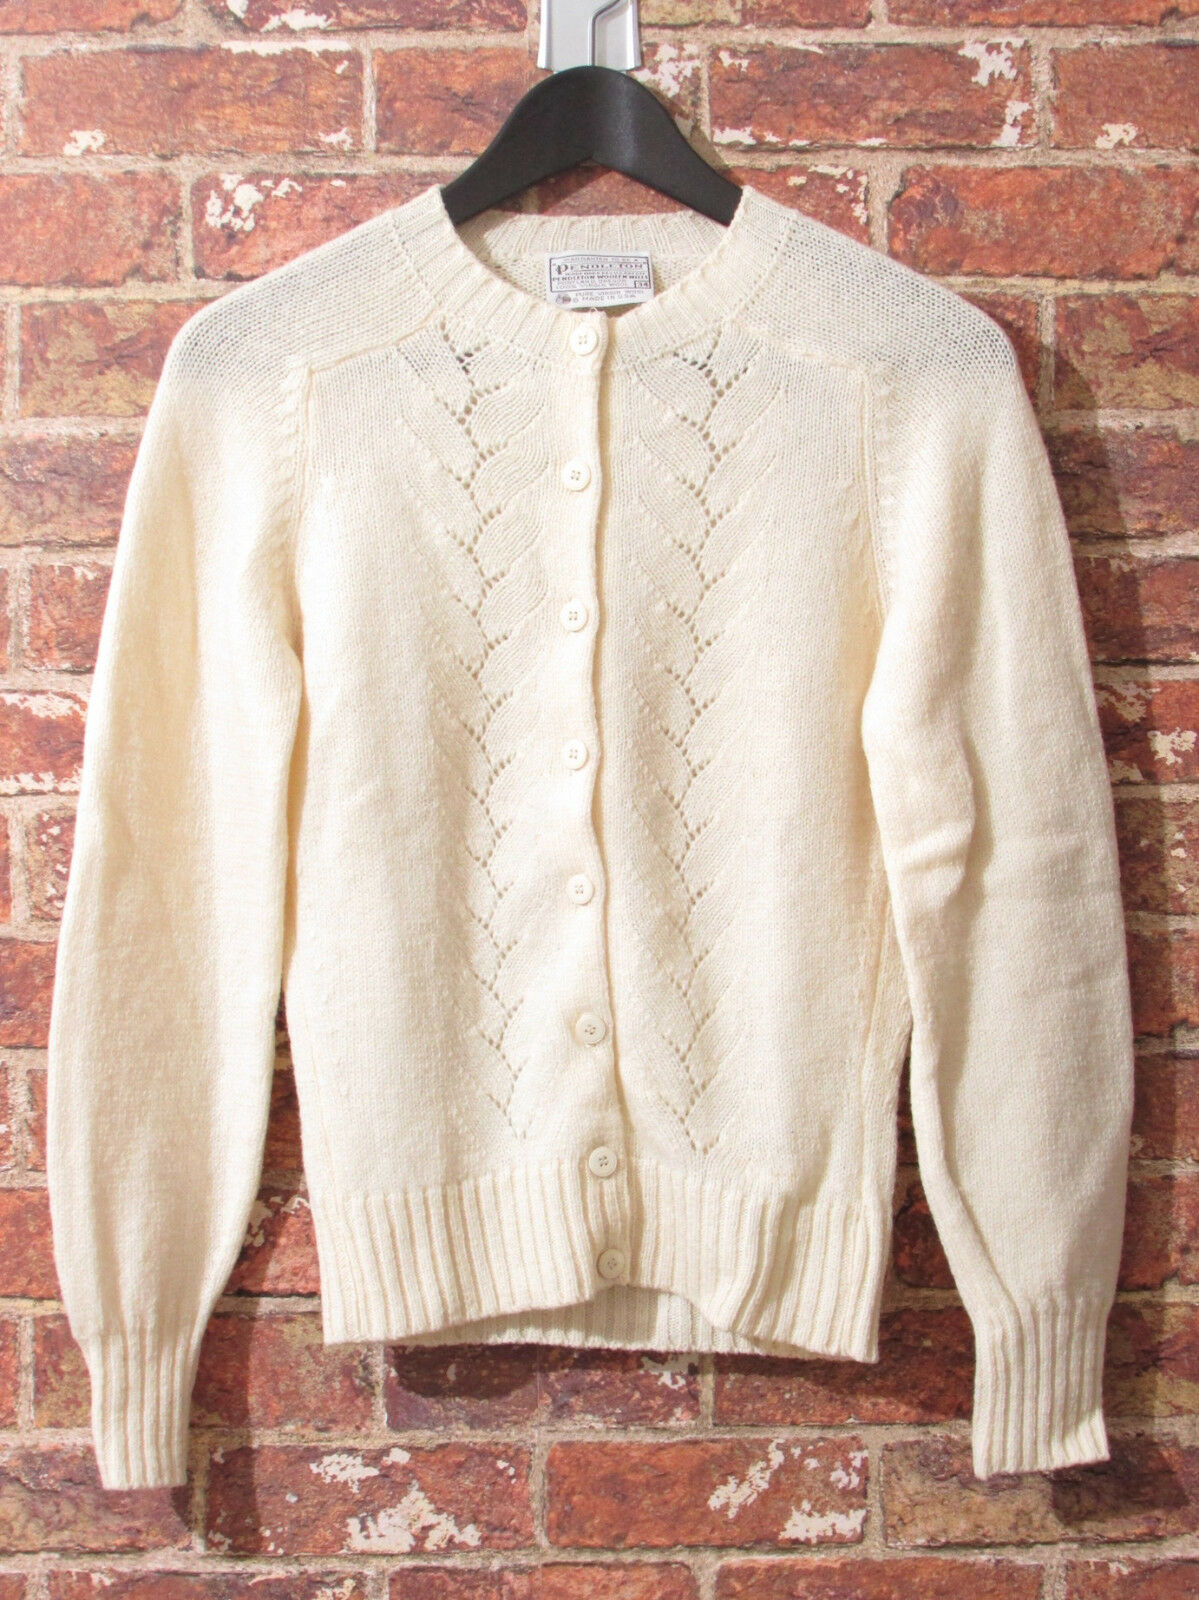 VTG 60's 70's Pendleton 34 XS Ivory Off White Sweater Jumper Cardigan Cableknit